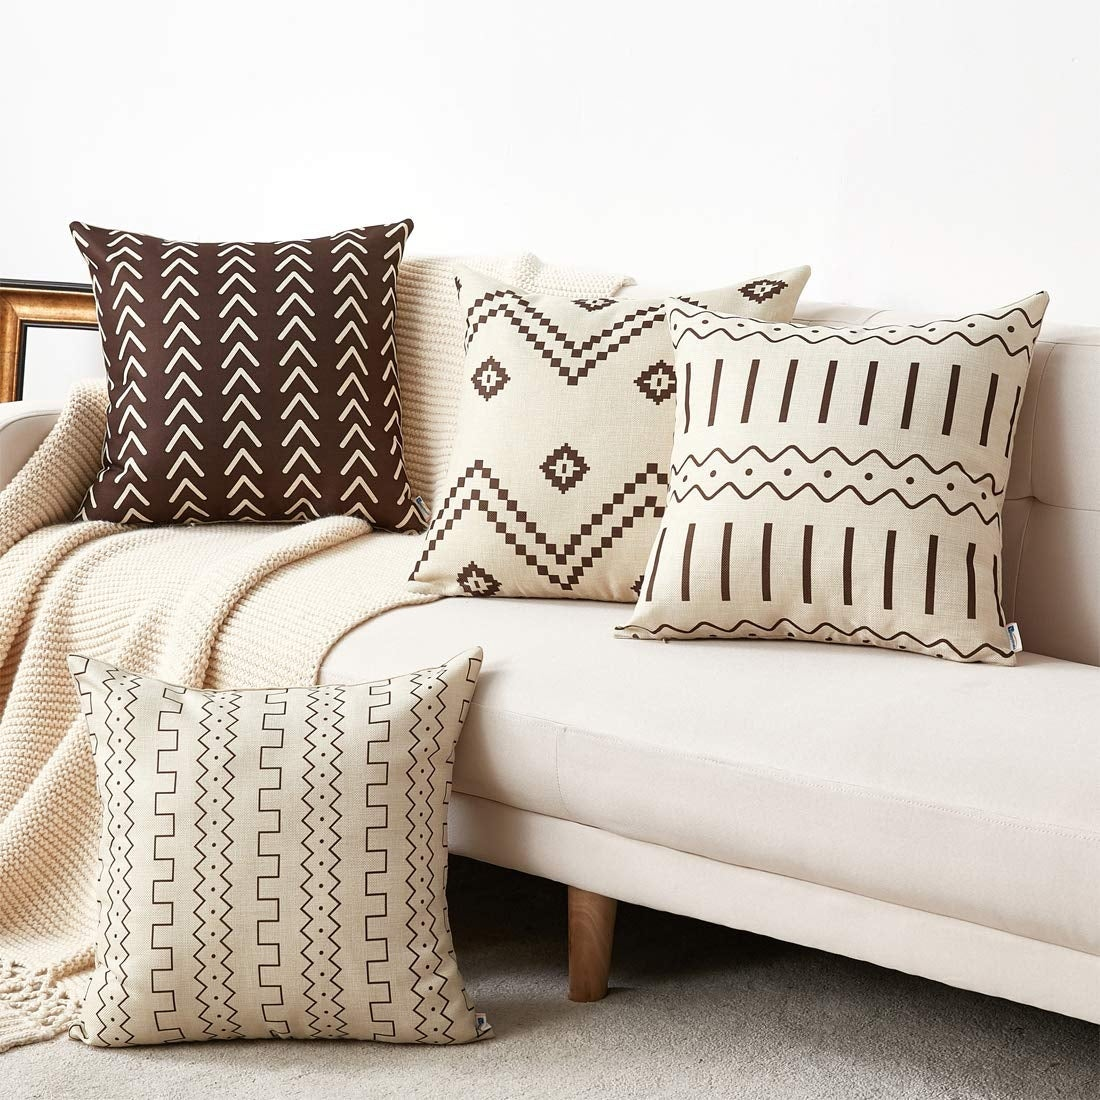 Neutral Decorative Pillow Covers For Sofa Couch Chair Overstock 29175868